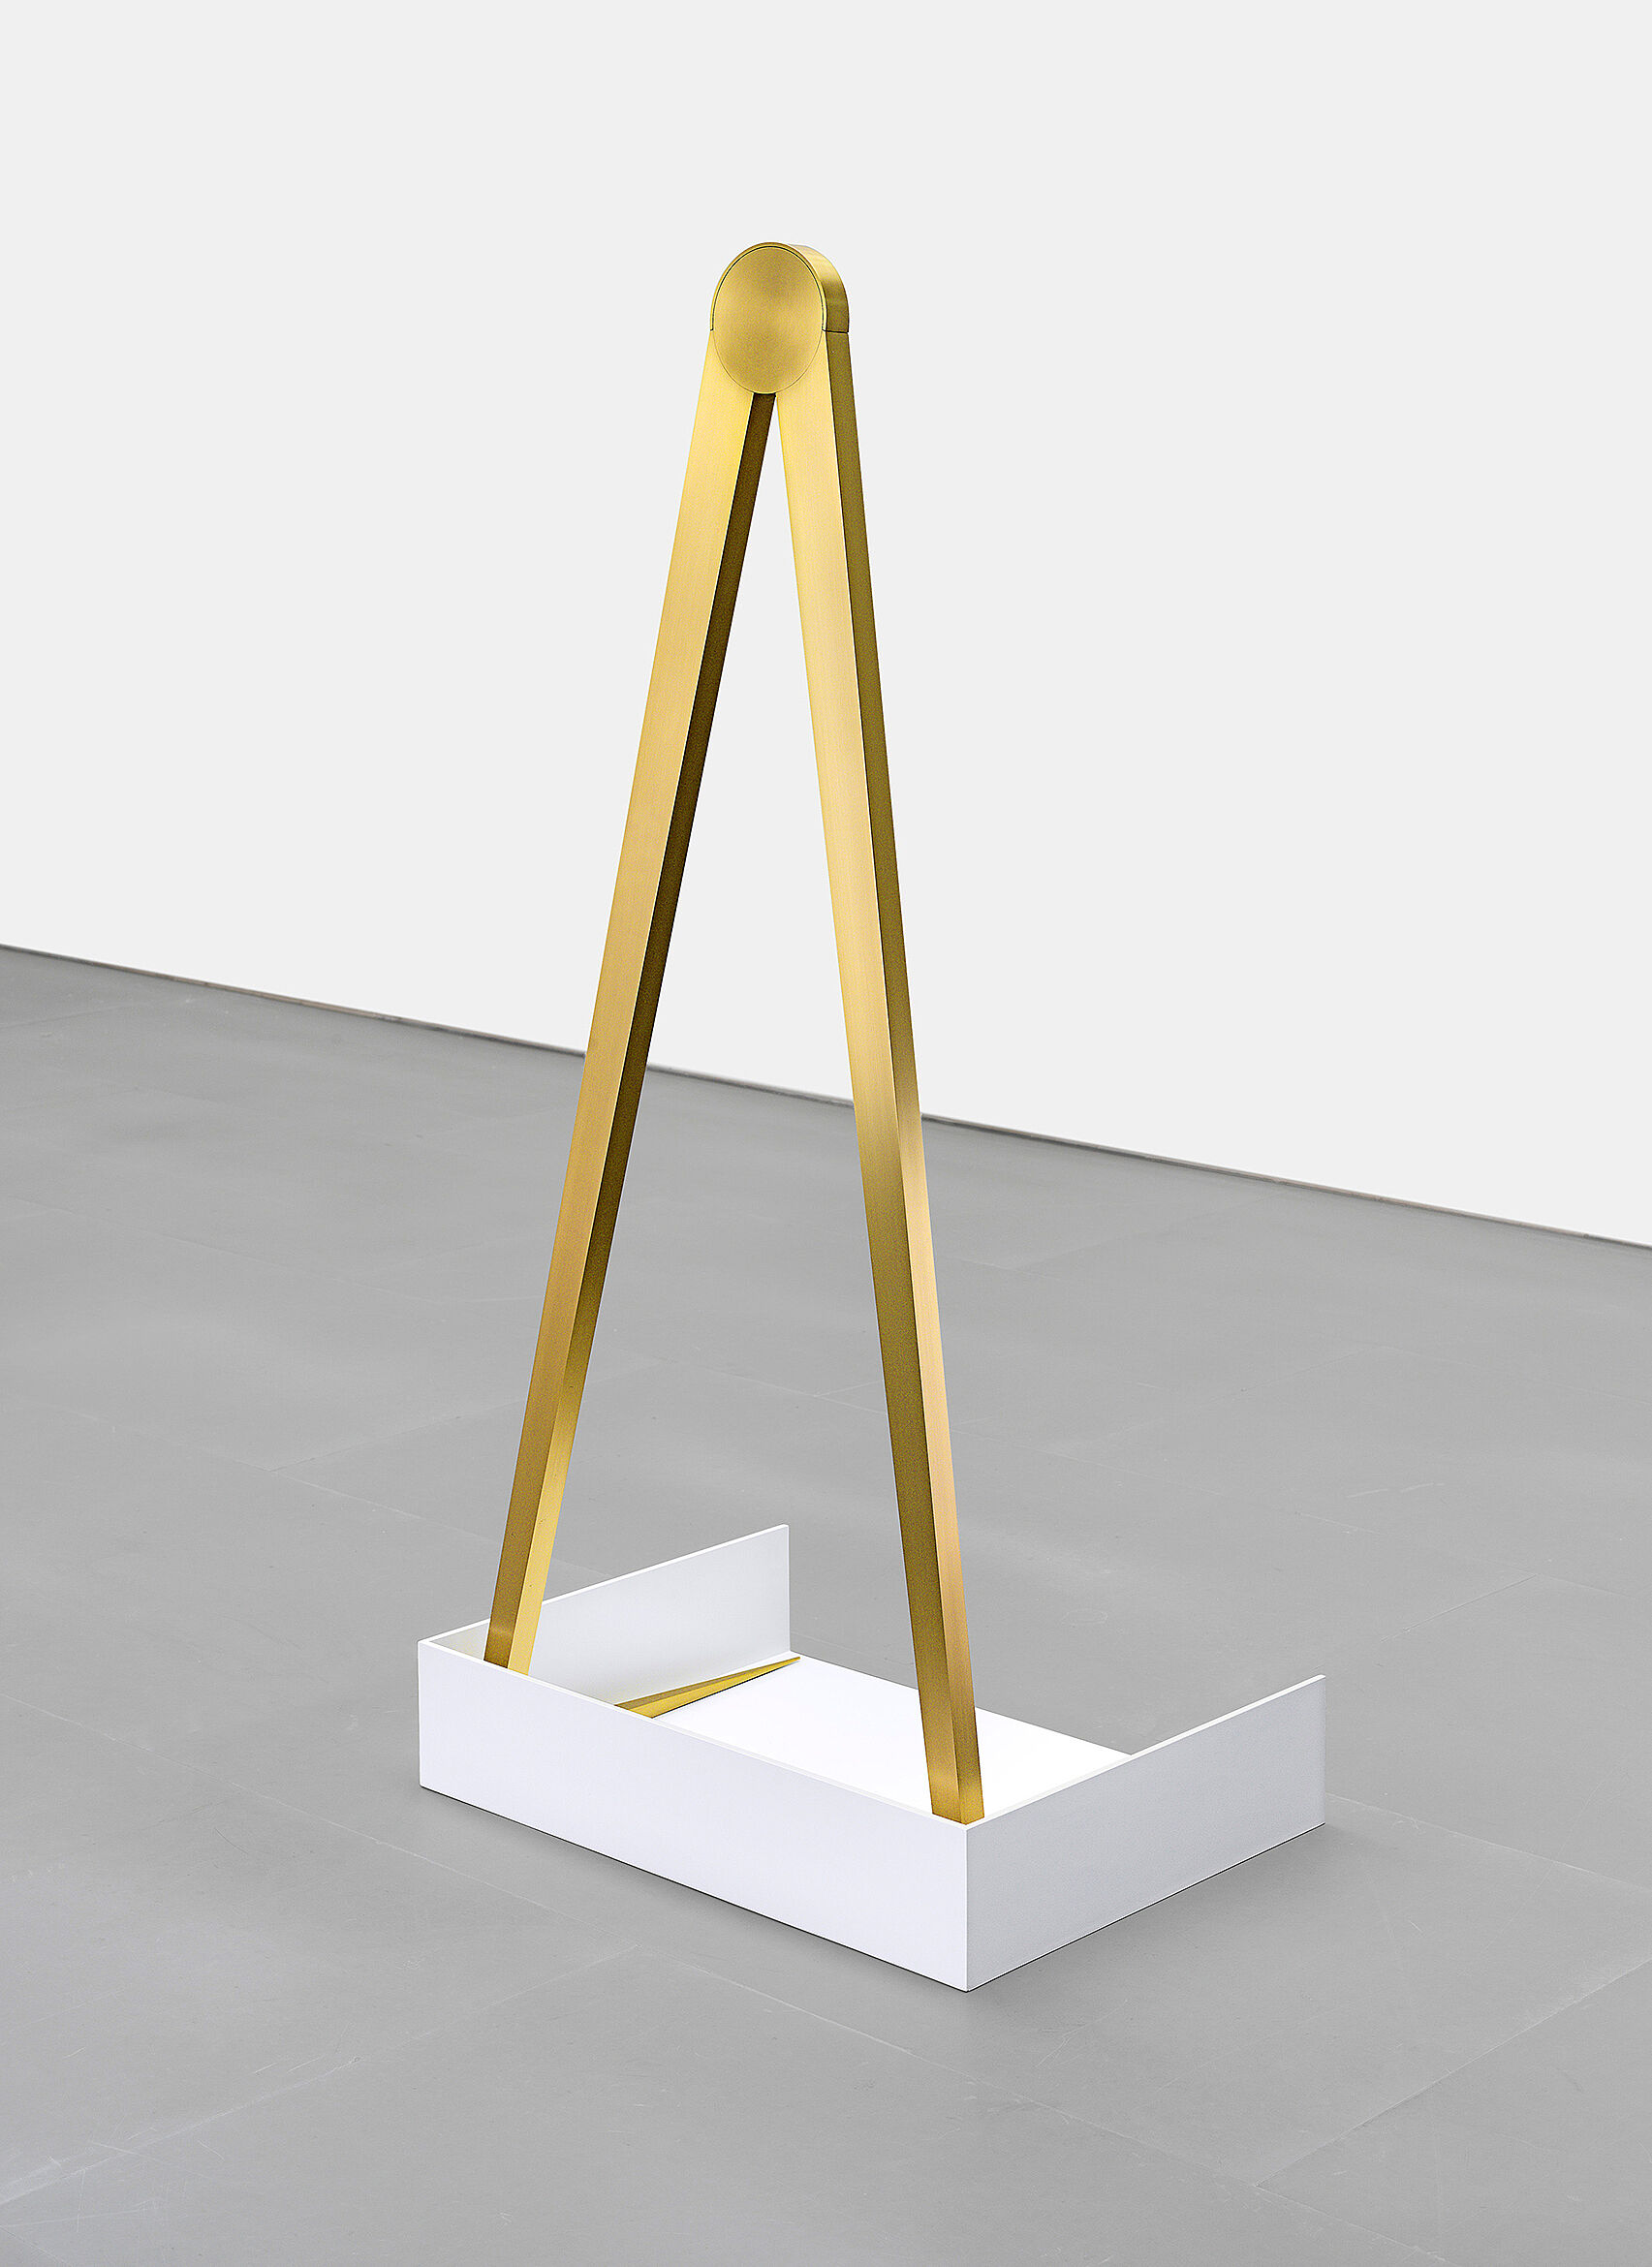 A sculpture featuring a bronze triangle shape, sitting in a white box